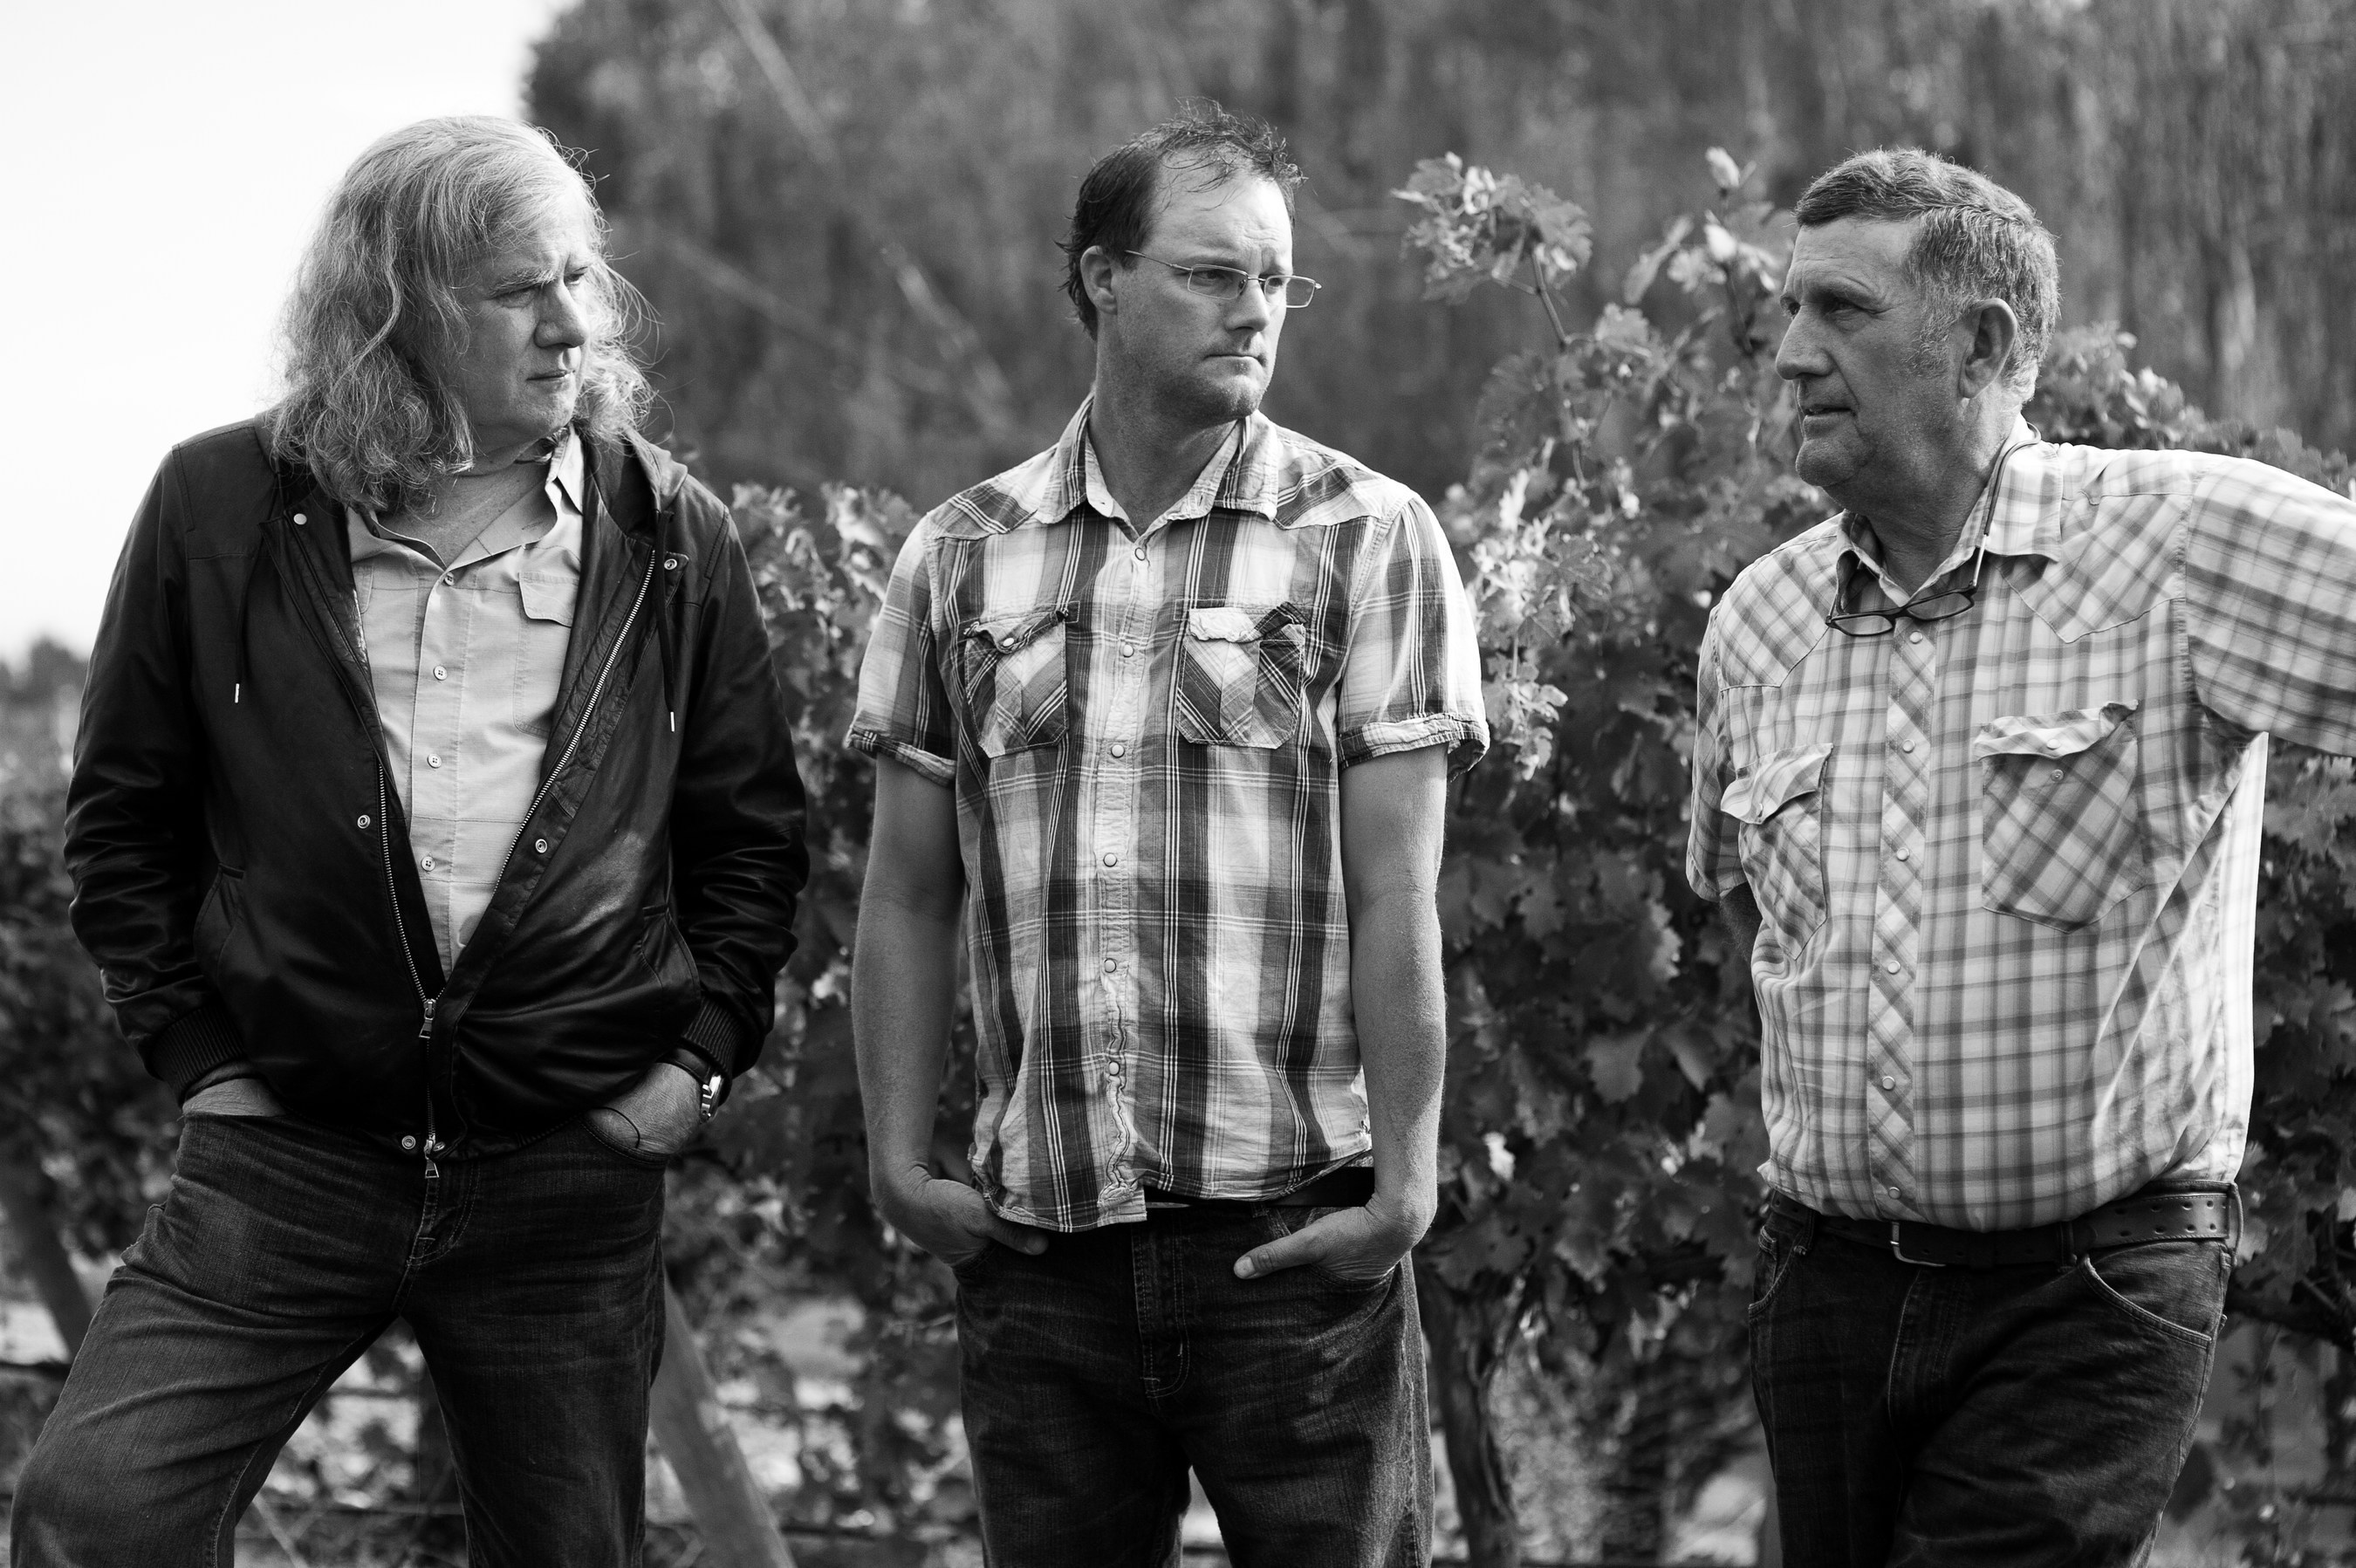 (L-R): Chris Upchurch, Executive Winemaker & Co-Founder of DeLille Cellars; Todd Newhouse, Harrison Hill ...